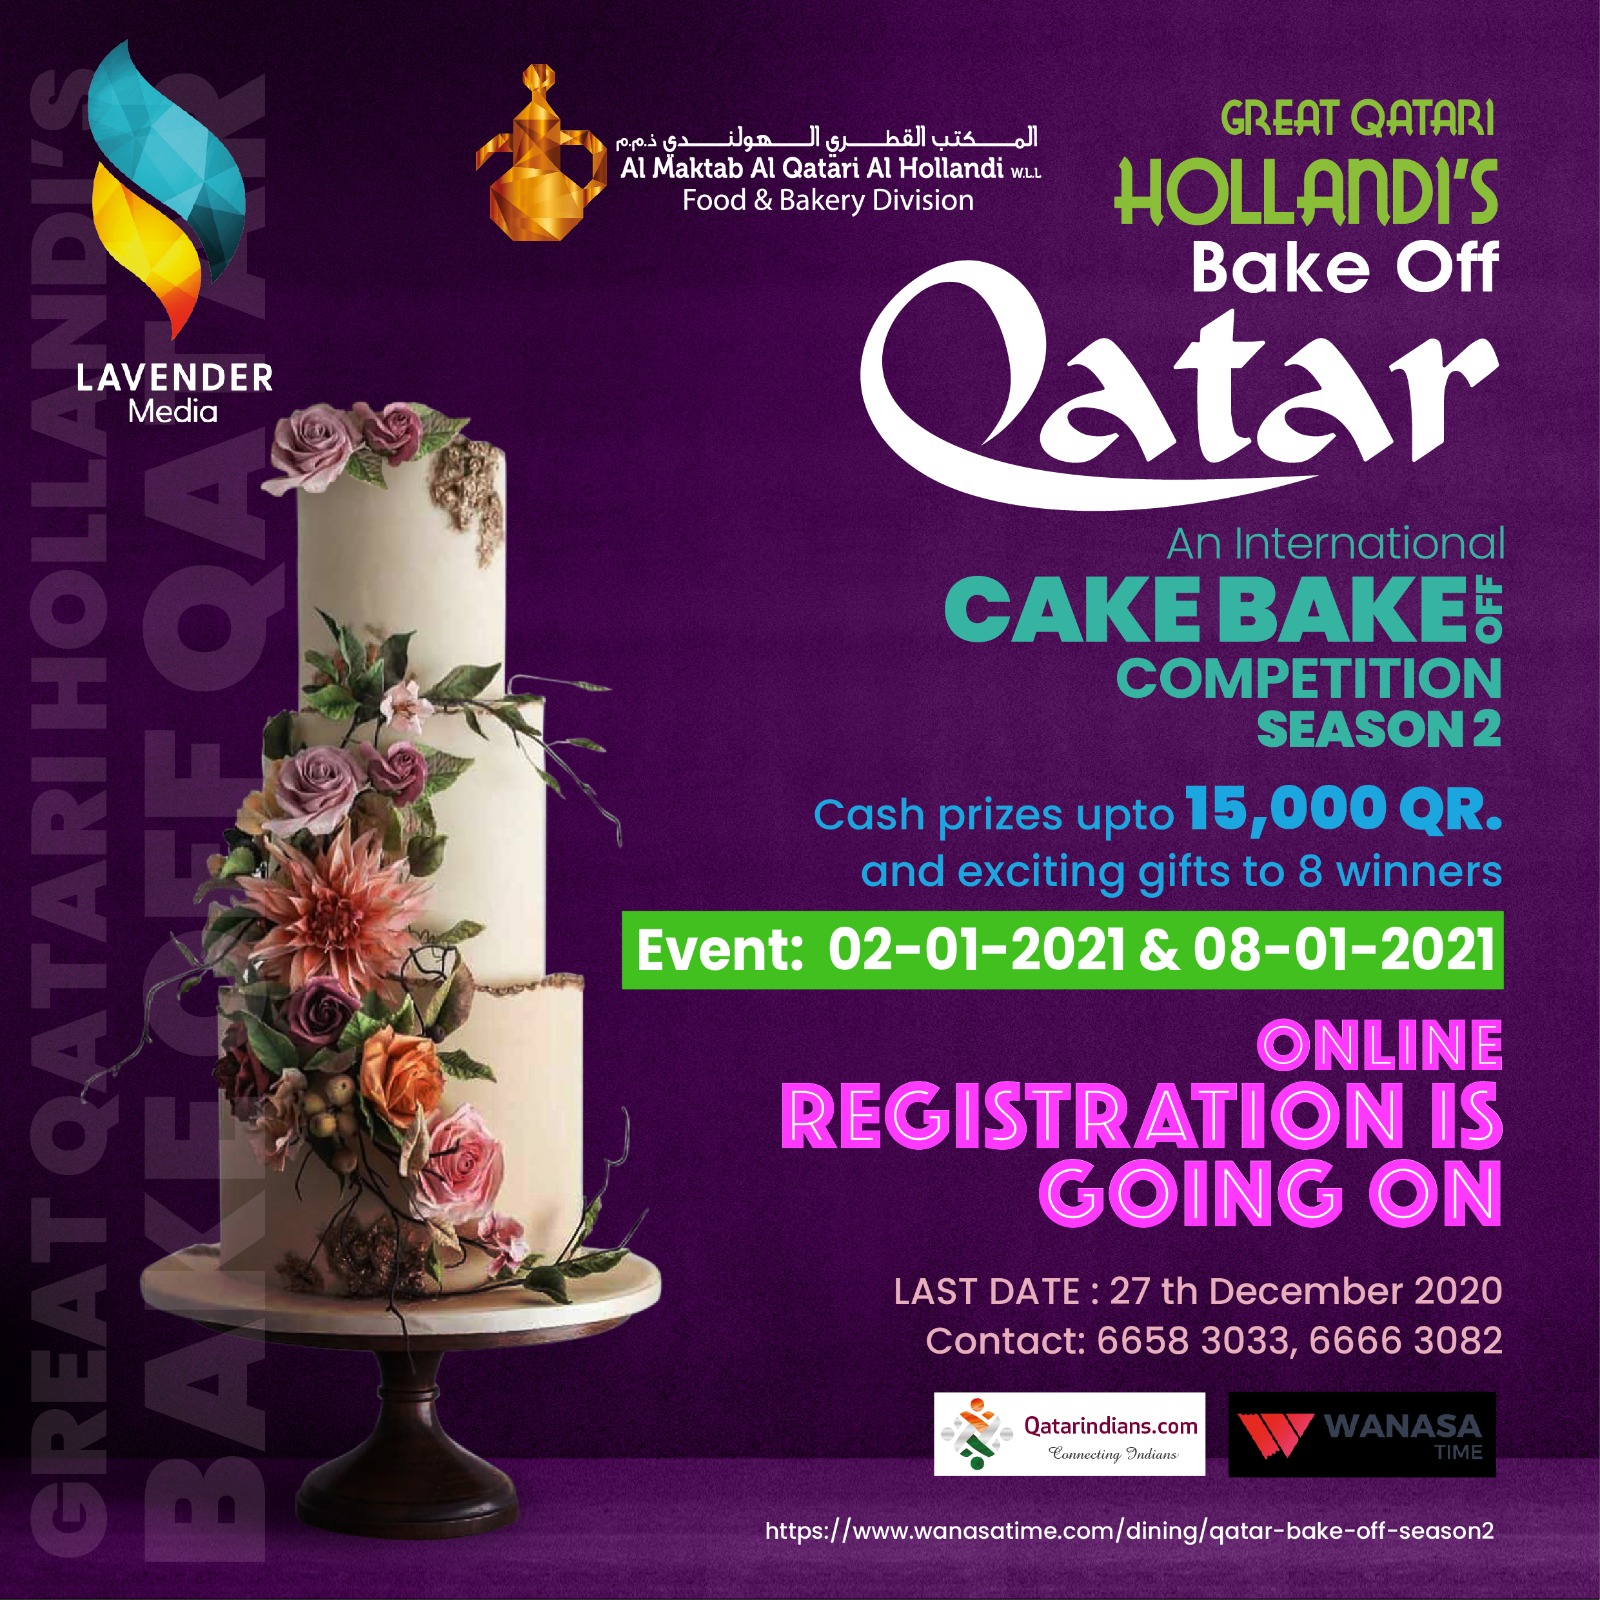 GREAT QATARI HOLLANDIS Bake Off Qatar - Season 2. Last date to register your entry in to competition is 27 December 2020.